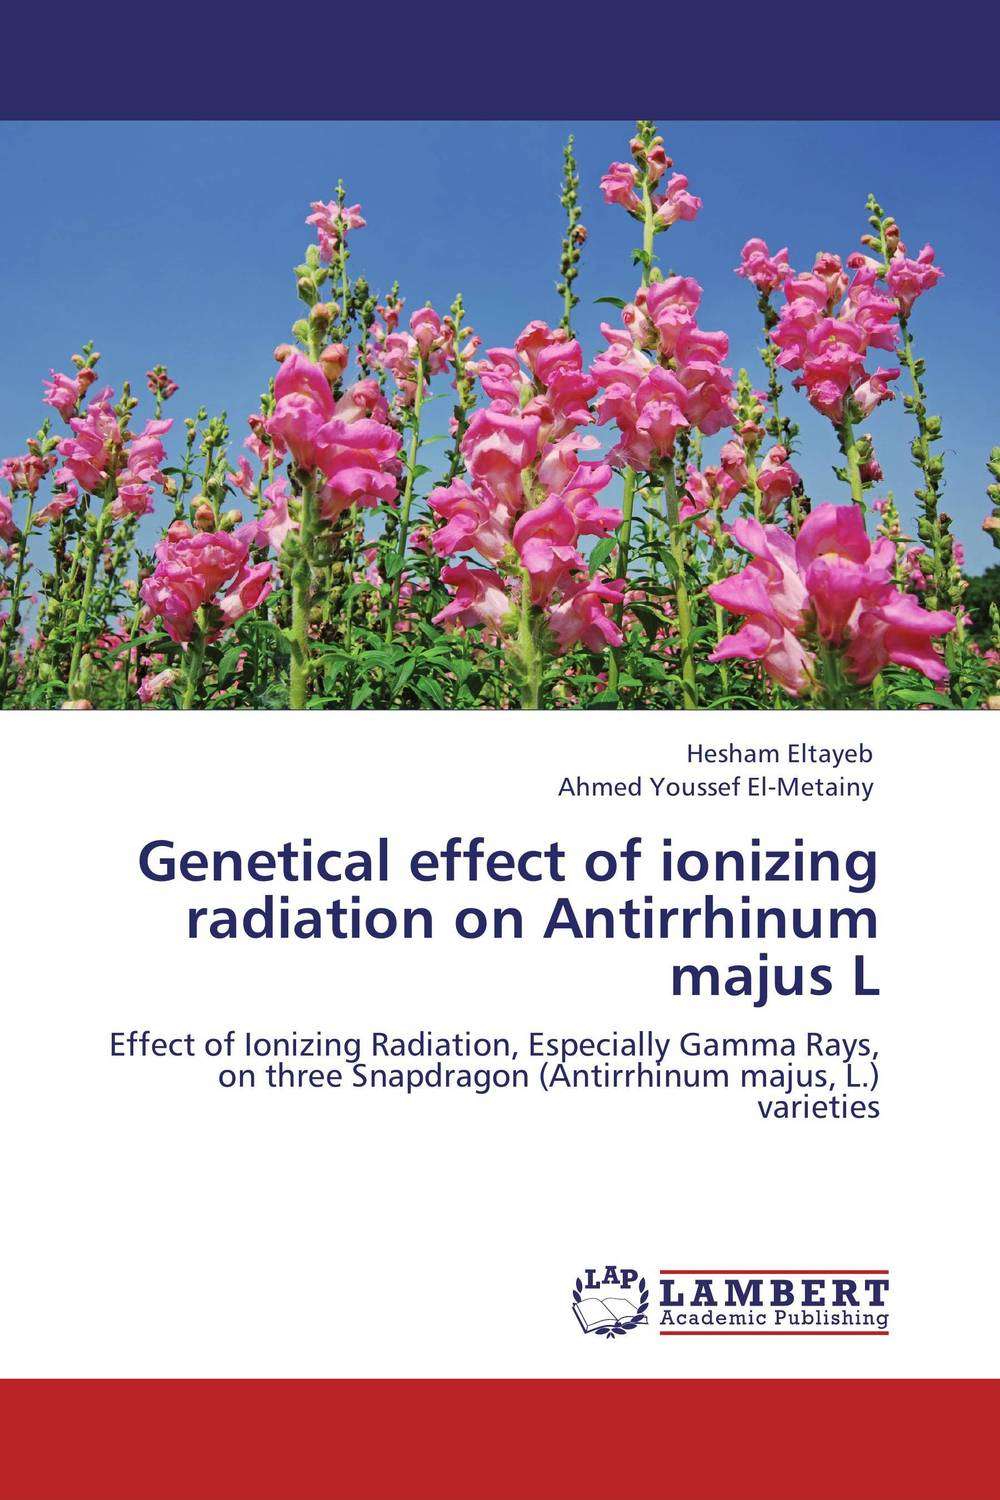 Genetical effect of ionizing radiation on Antirrhinum majus L systematics on family tabanidae in egypt